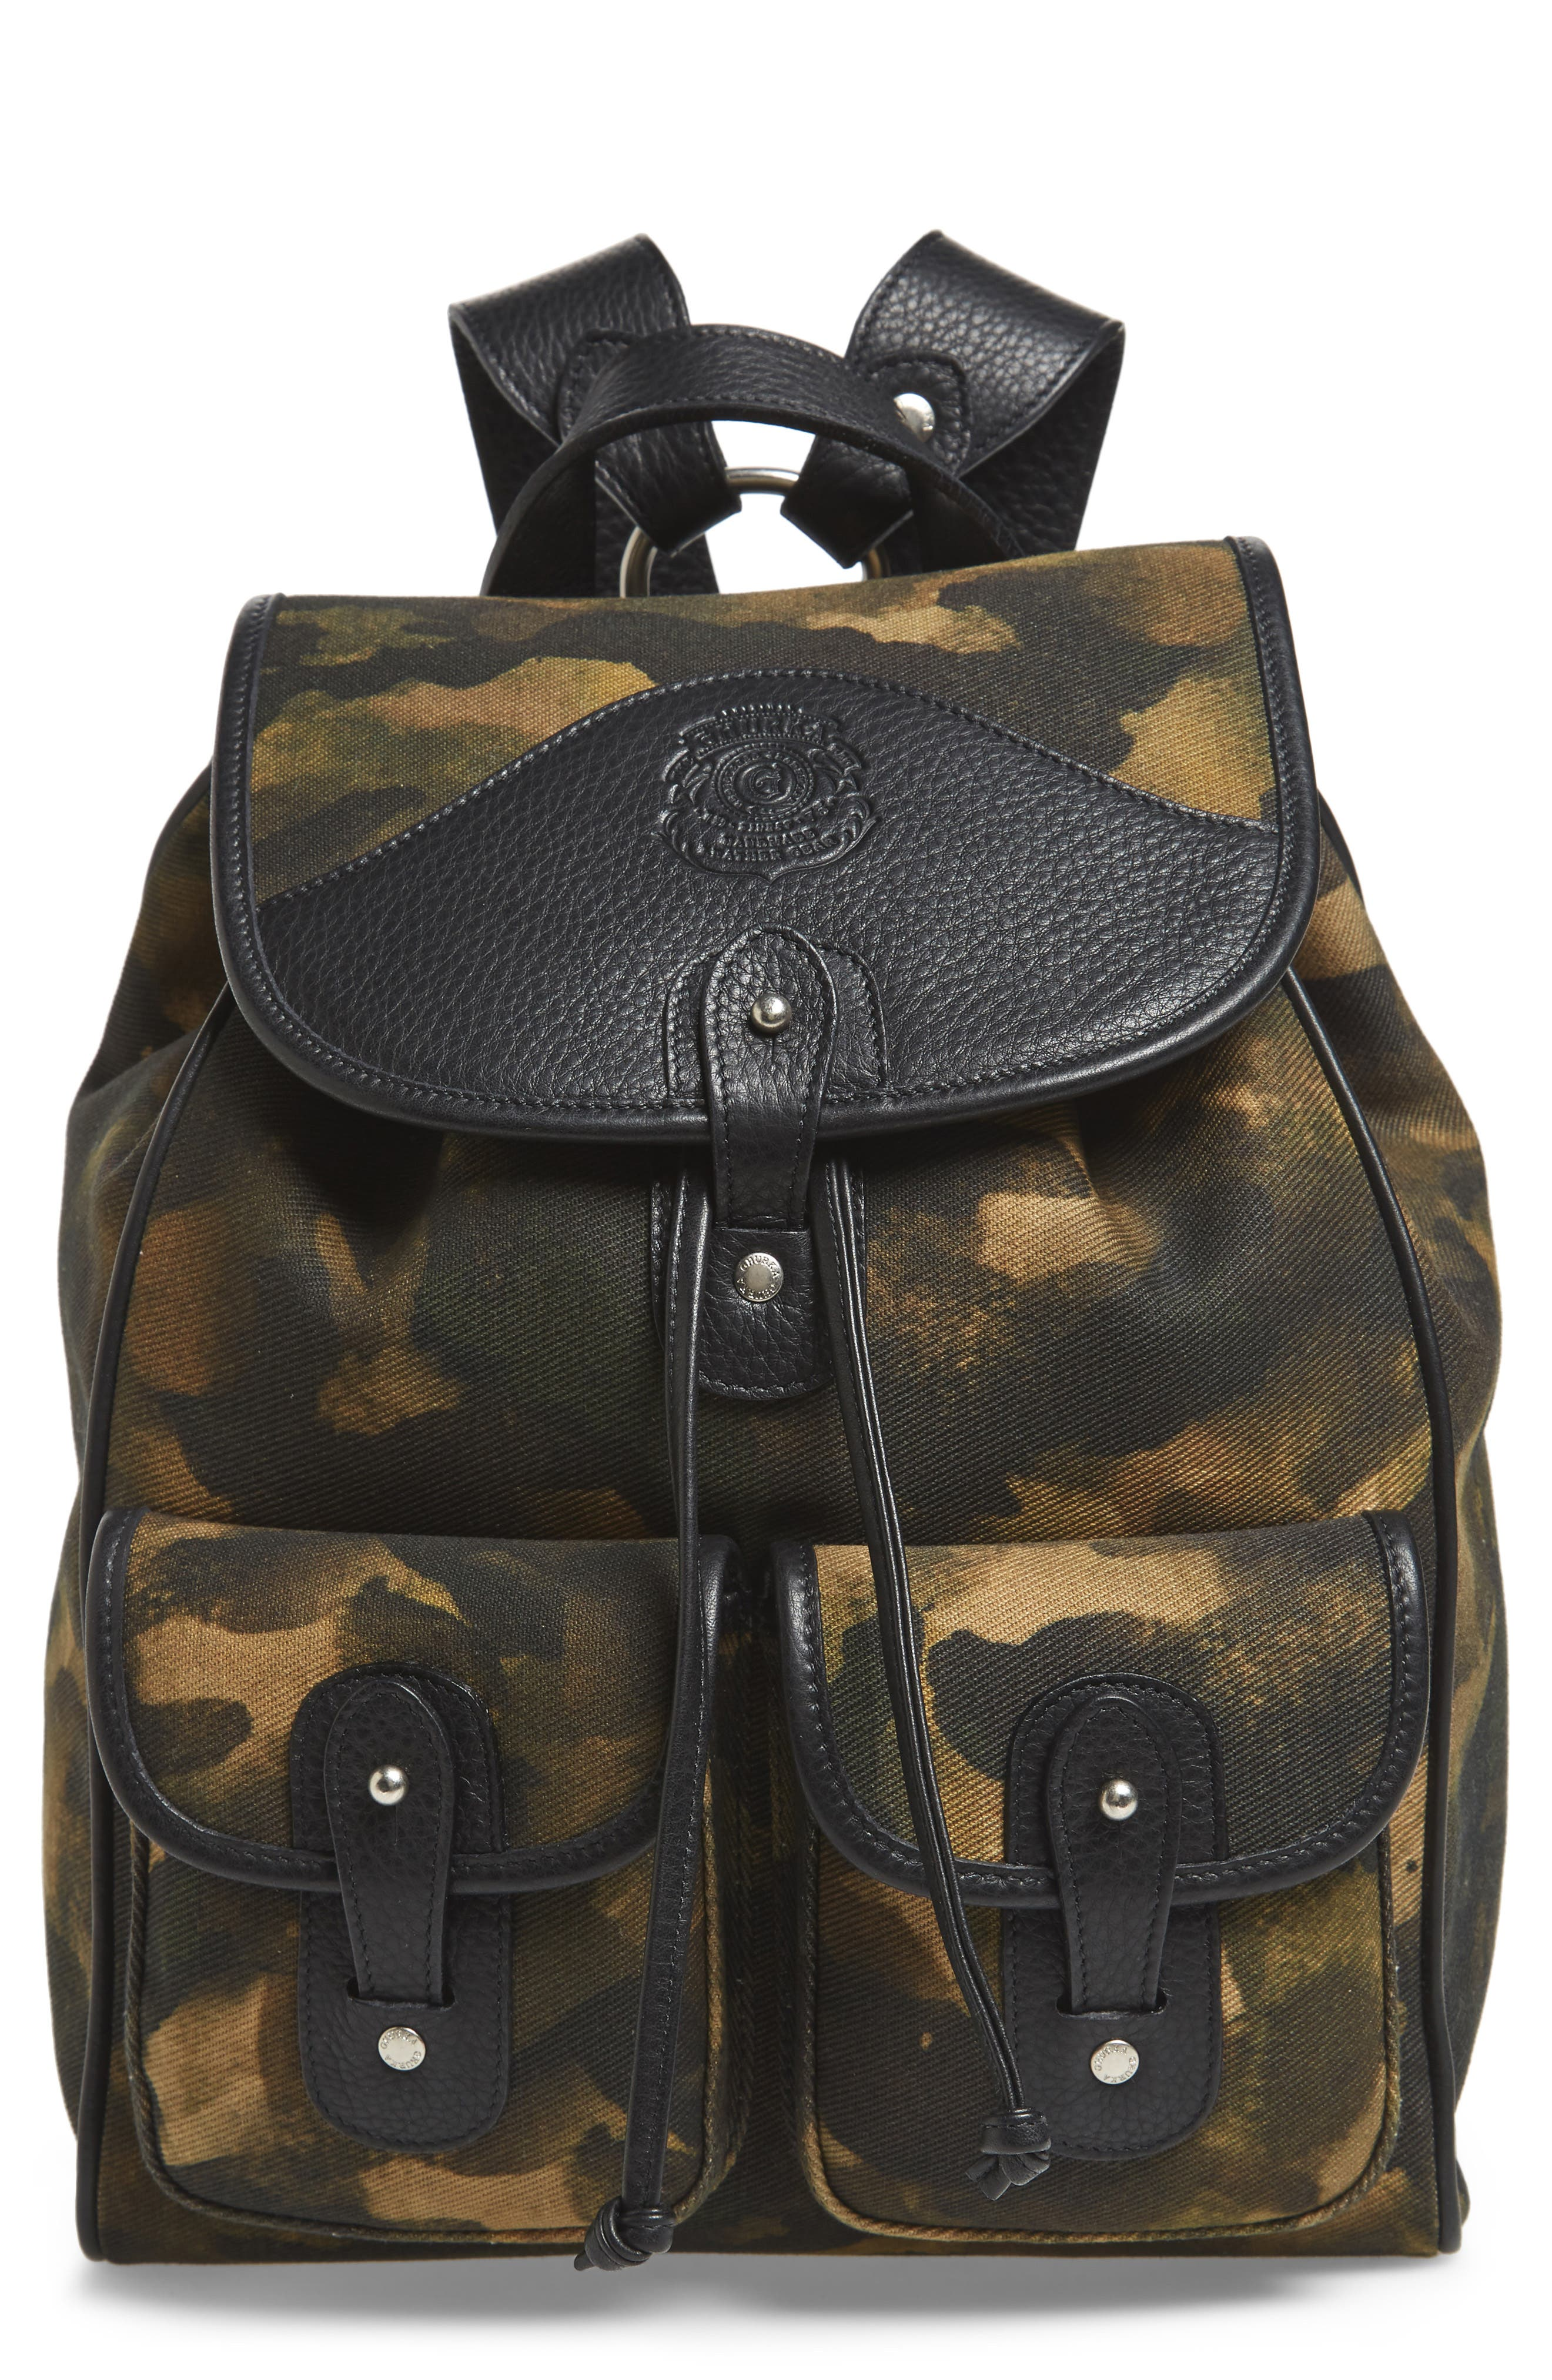 Blazer Canvas Backpack,                             Main thumbnail 1, color,                             CAMO SOLID